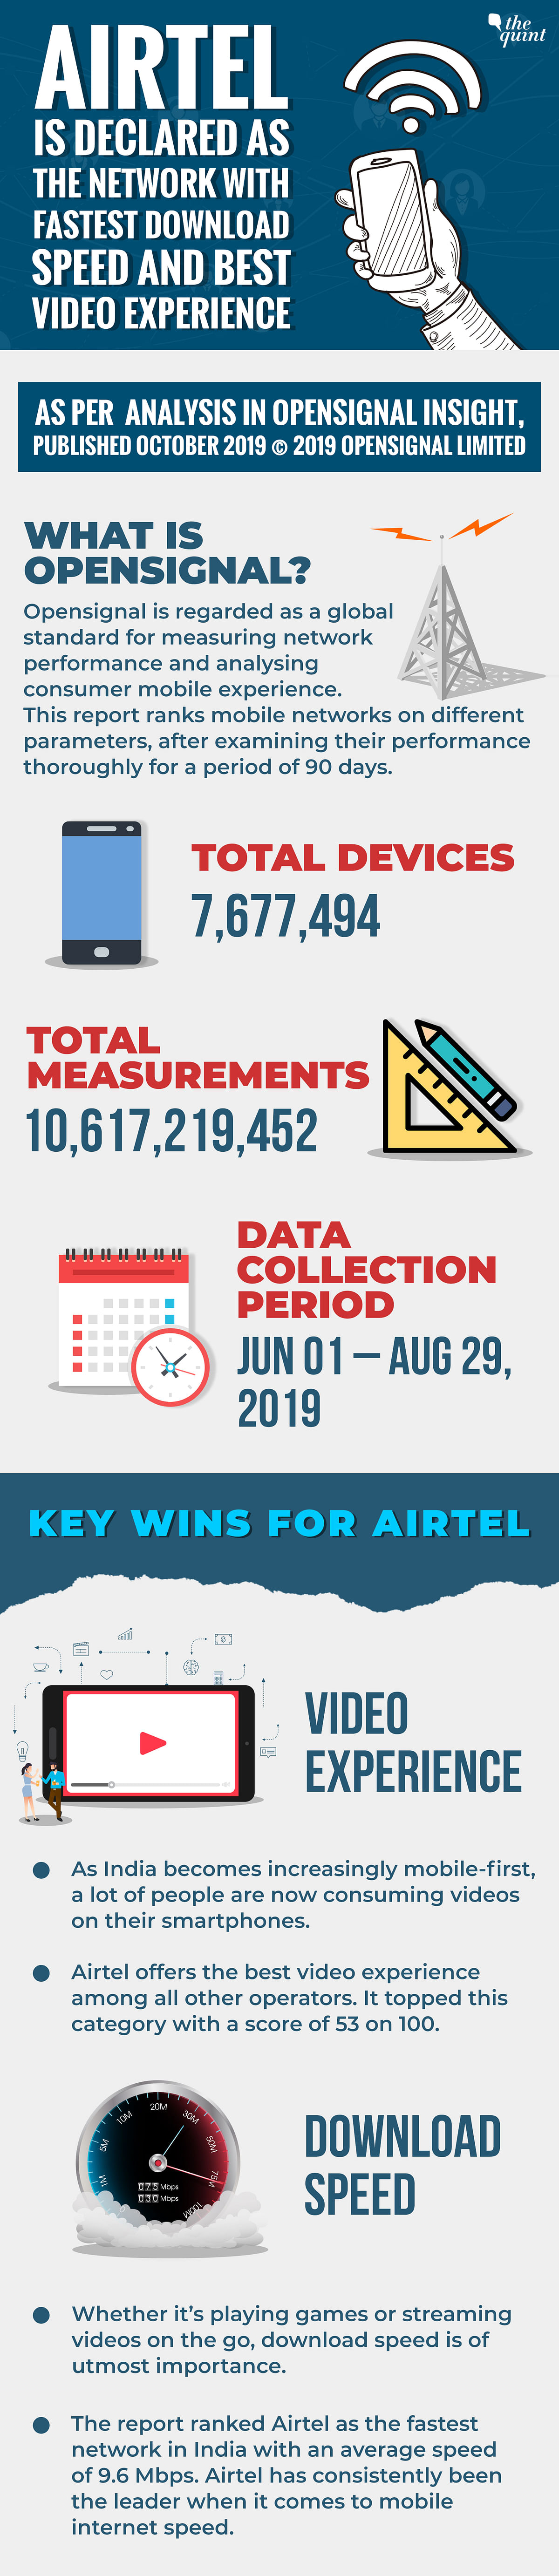 Opensignal  Names Airtel as Network With Fastest Download Speed